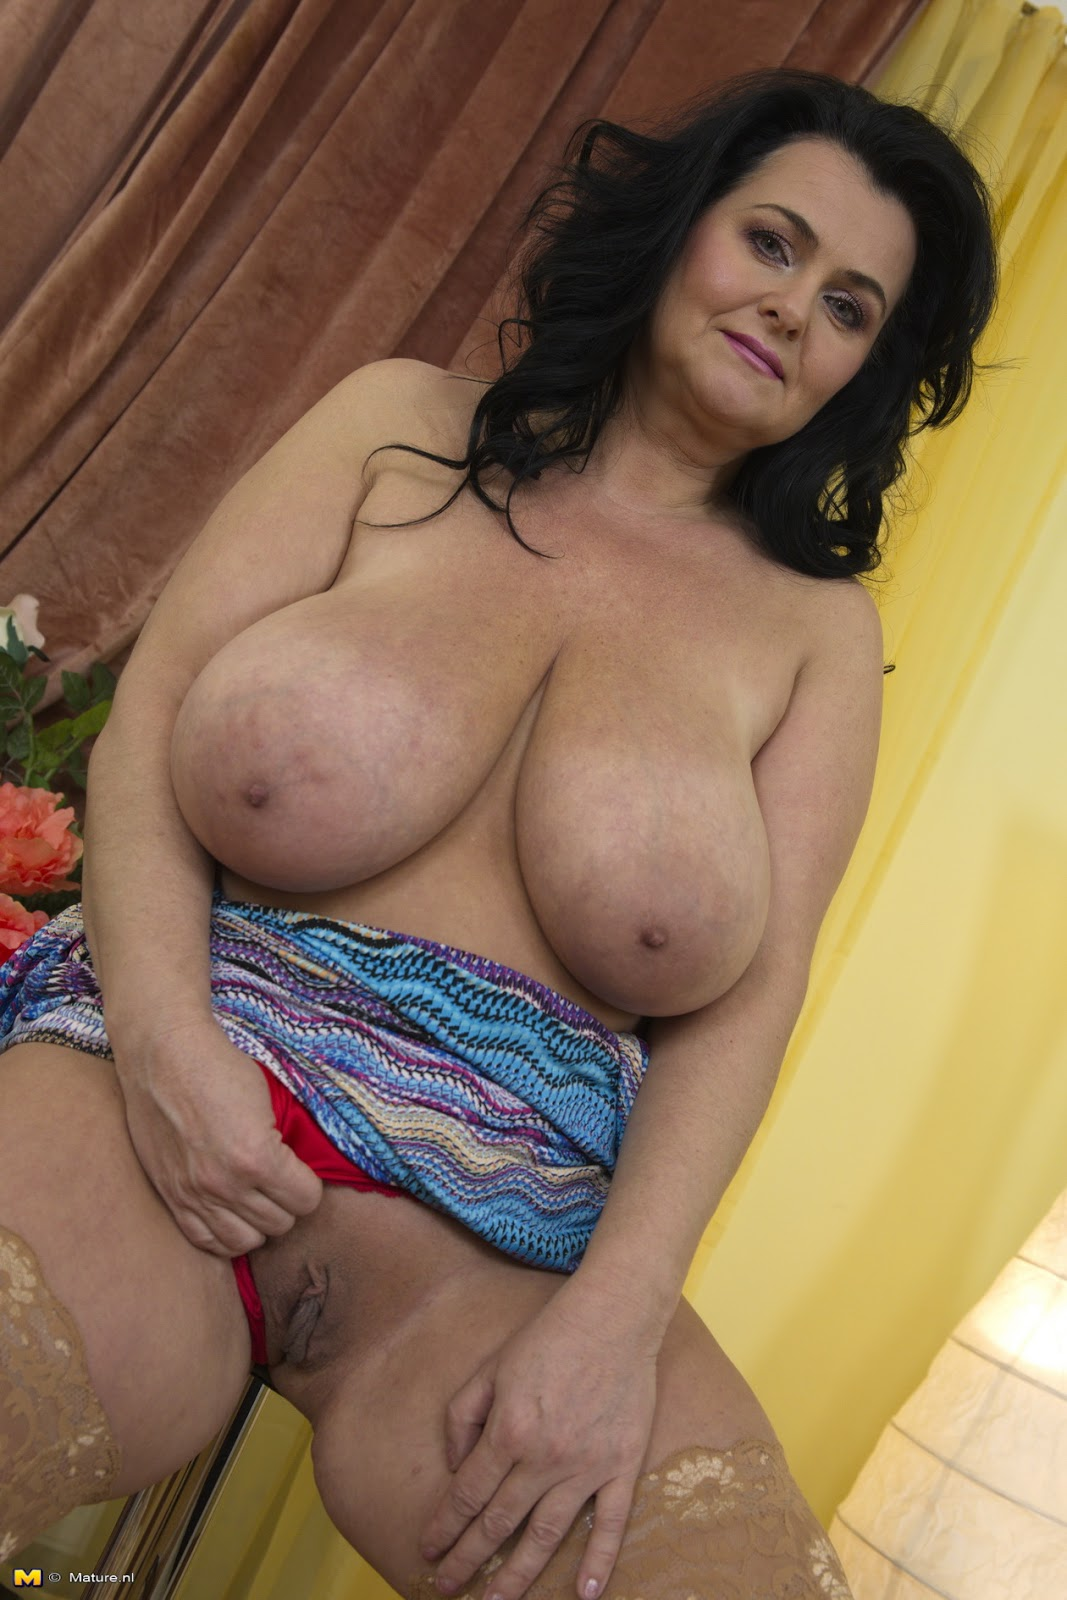 Mature Large Breasted Woman